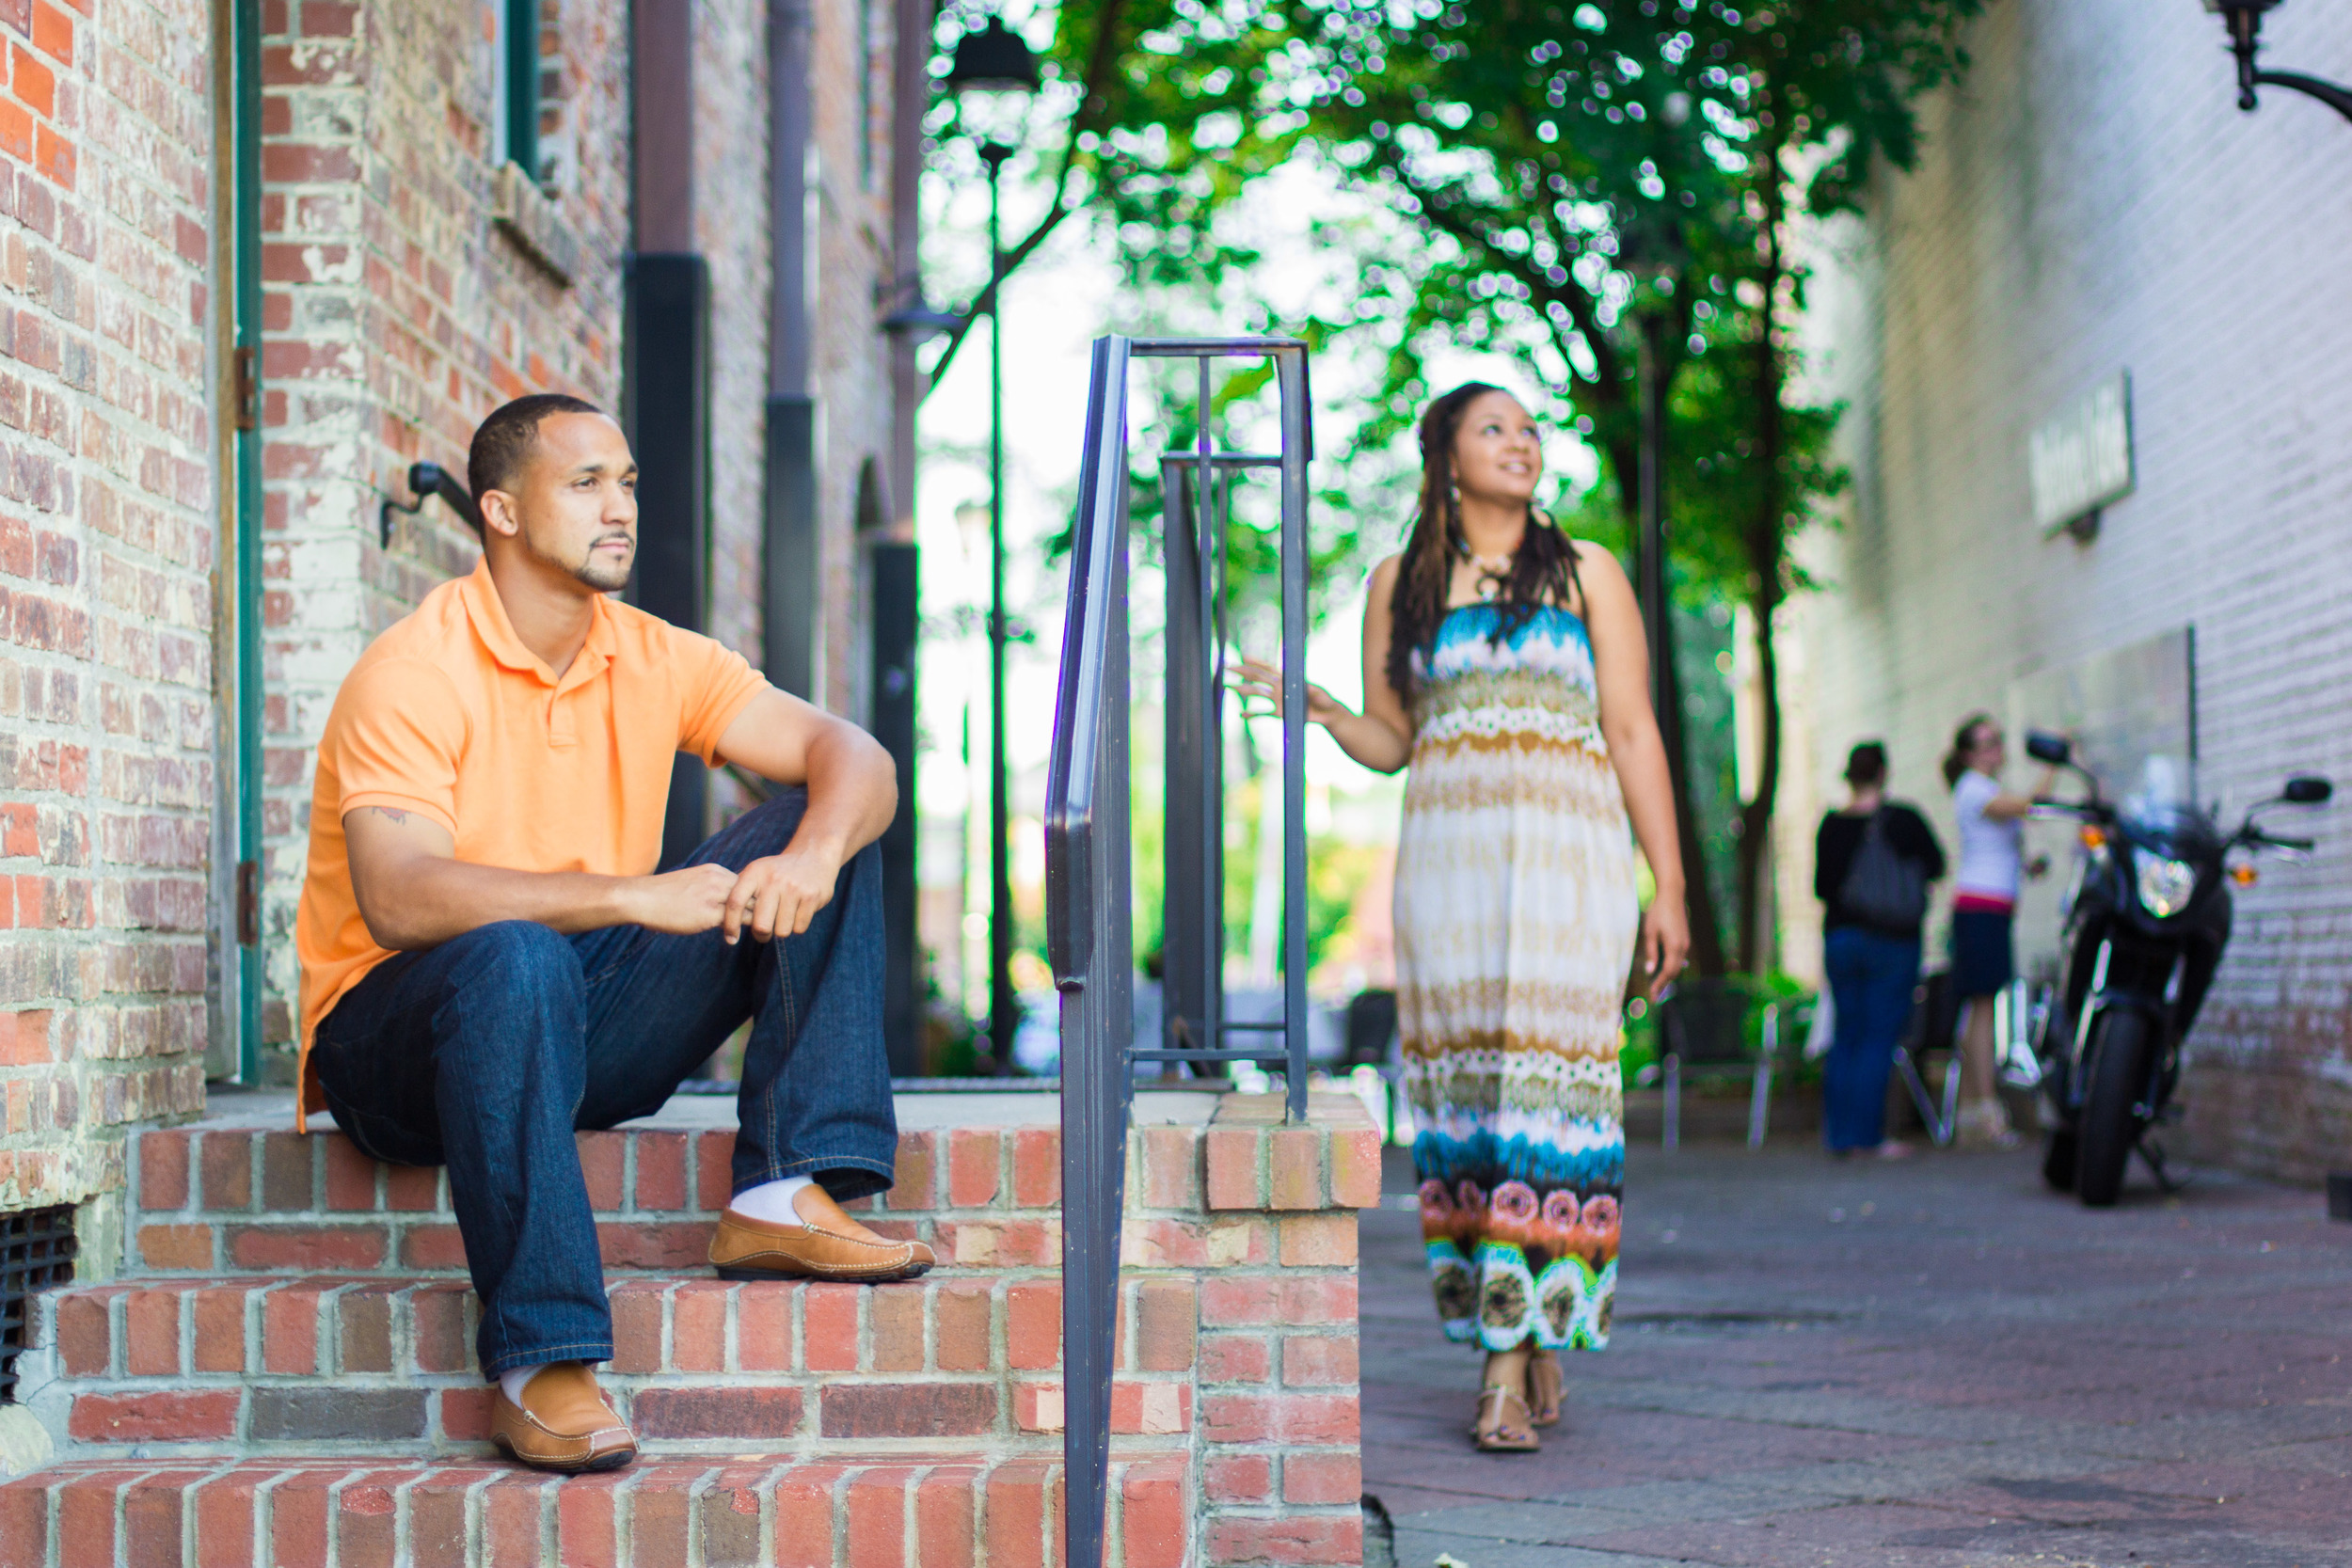 downtown greenville nc engagement anthony kim photography